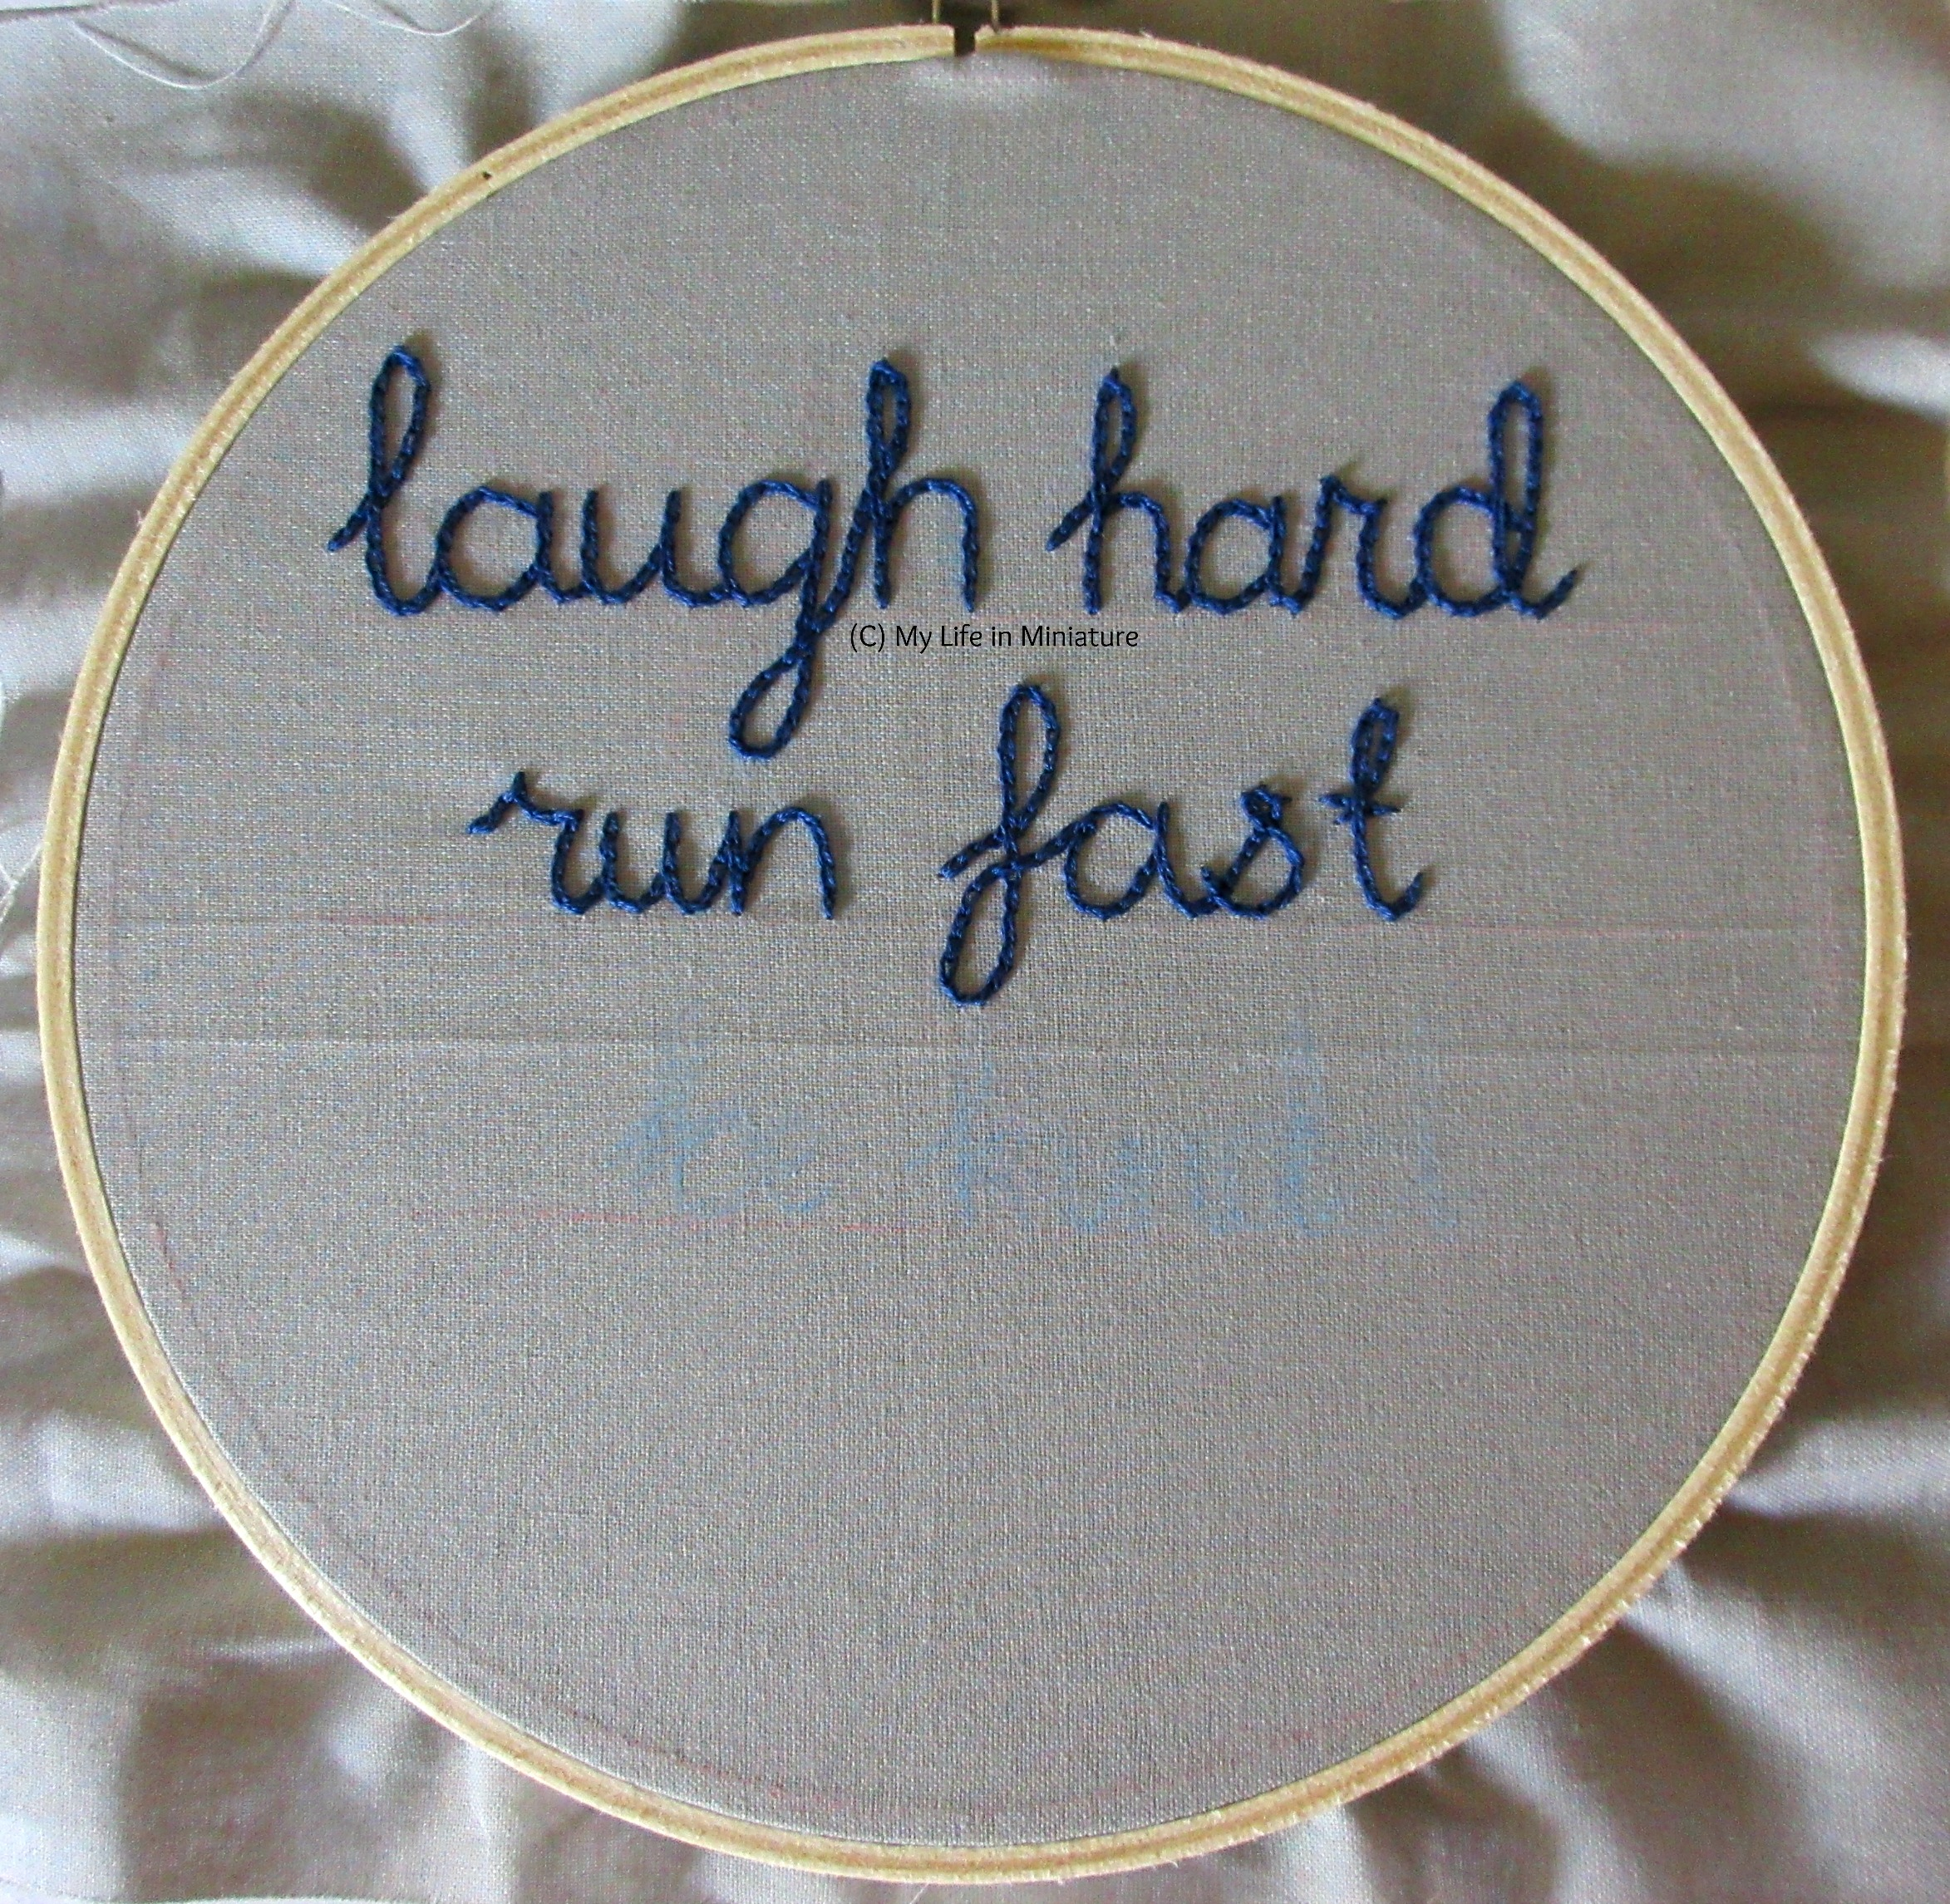 An embroidery hoop fills the image, strung with grey fabric. The phrase 'laugh hard; run fast' is stitched across the top half in dark blue chain stitch.